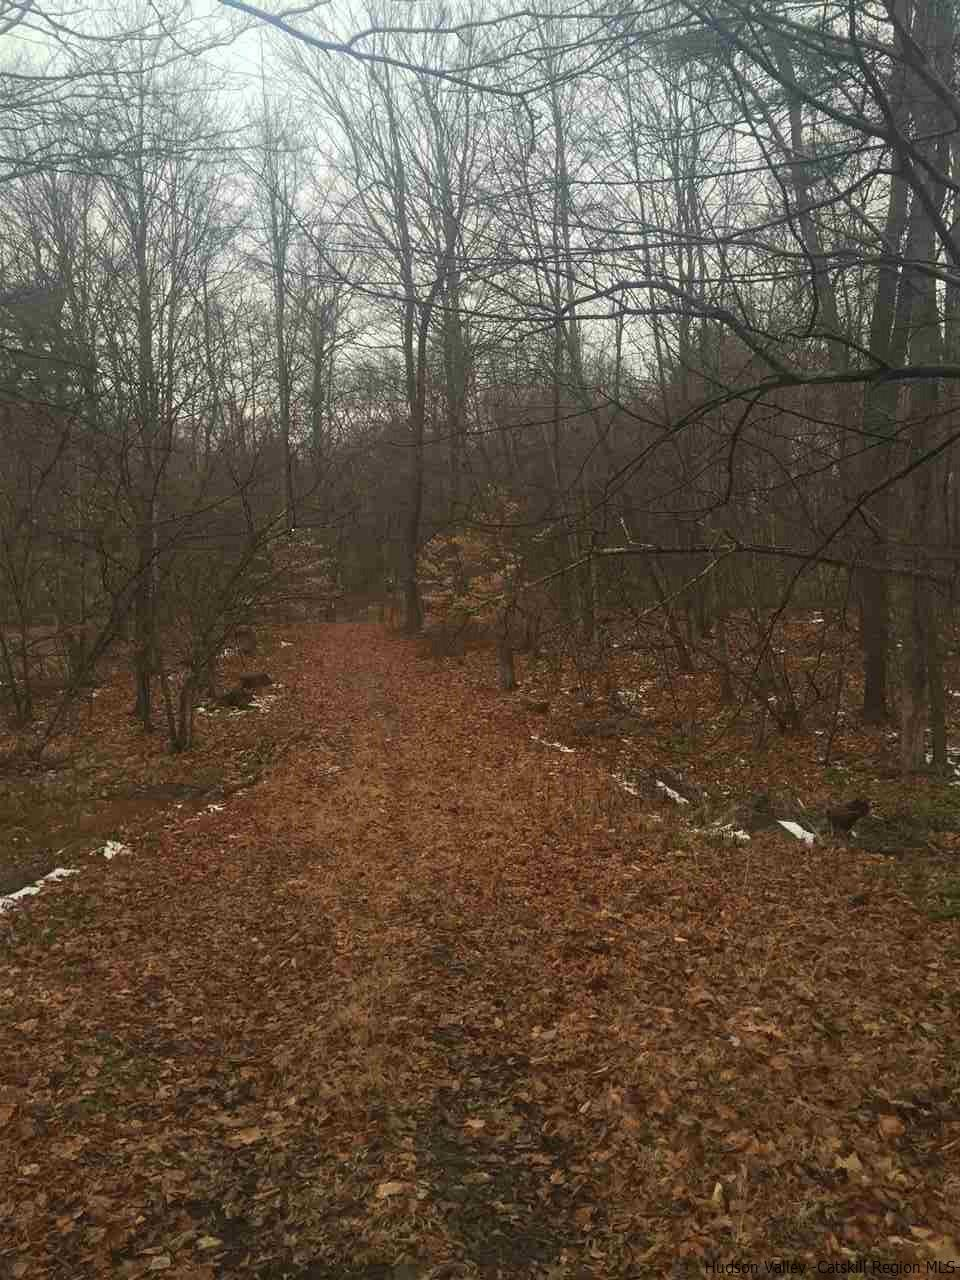 Additional photo for property listing at 70 Martin Sweedish Road 70 Martin Sweedish Road Rifton, New York 12420 United States